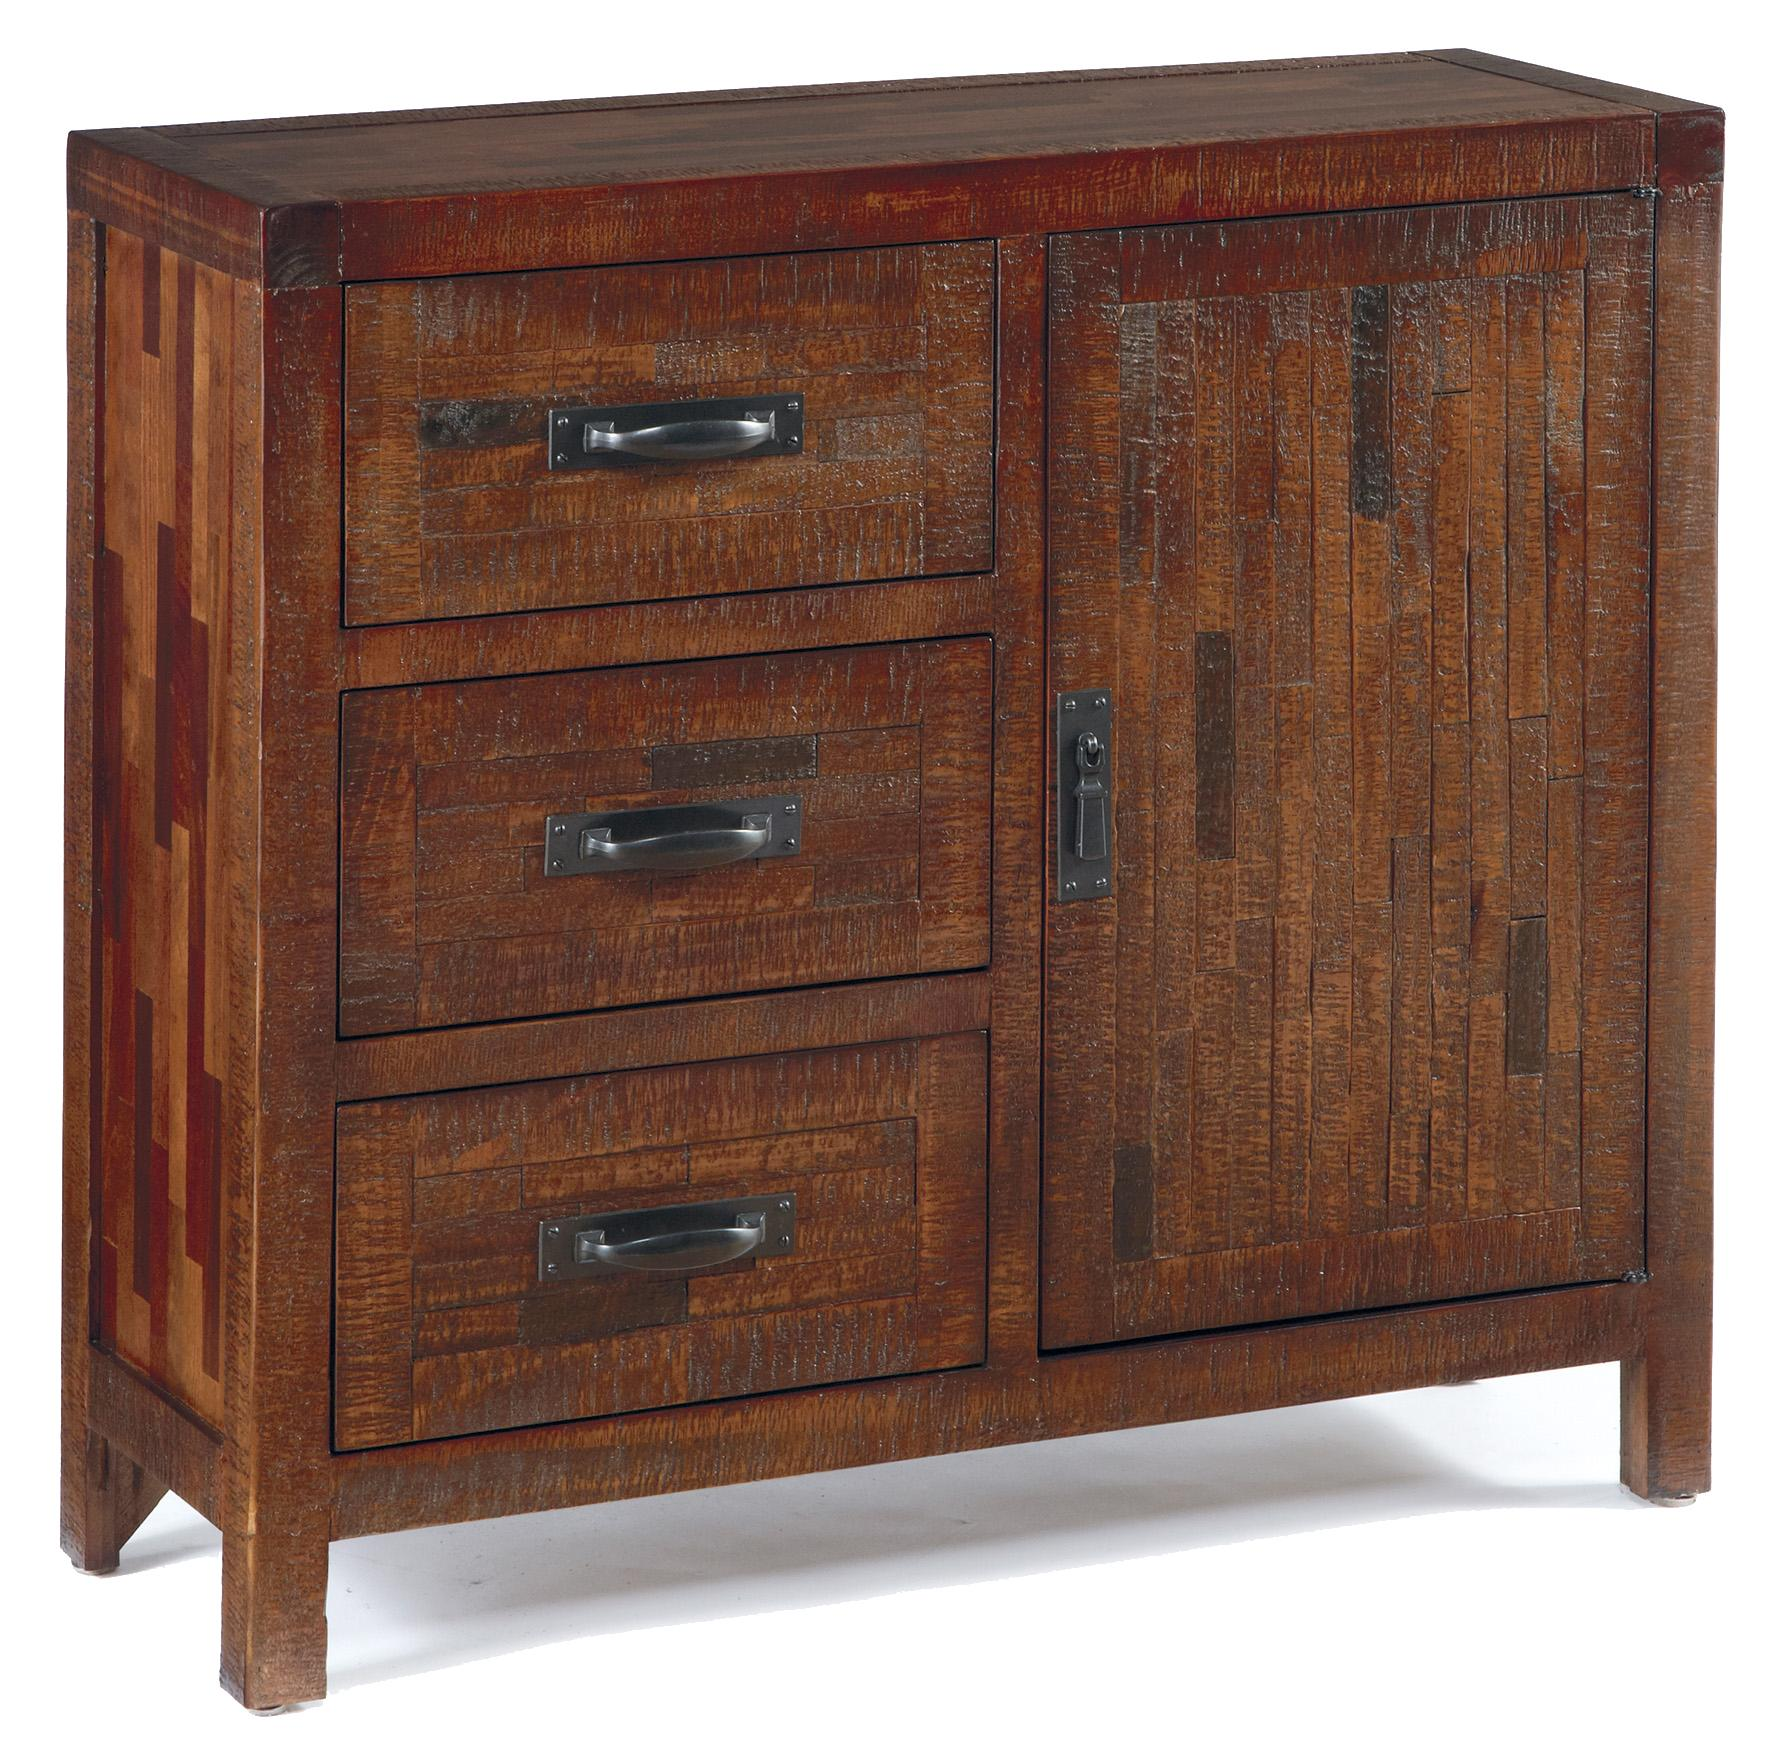 Rustic Accent Cabinet with Pine and Mixed Butcher-Block Veneer